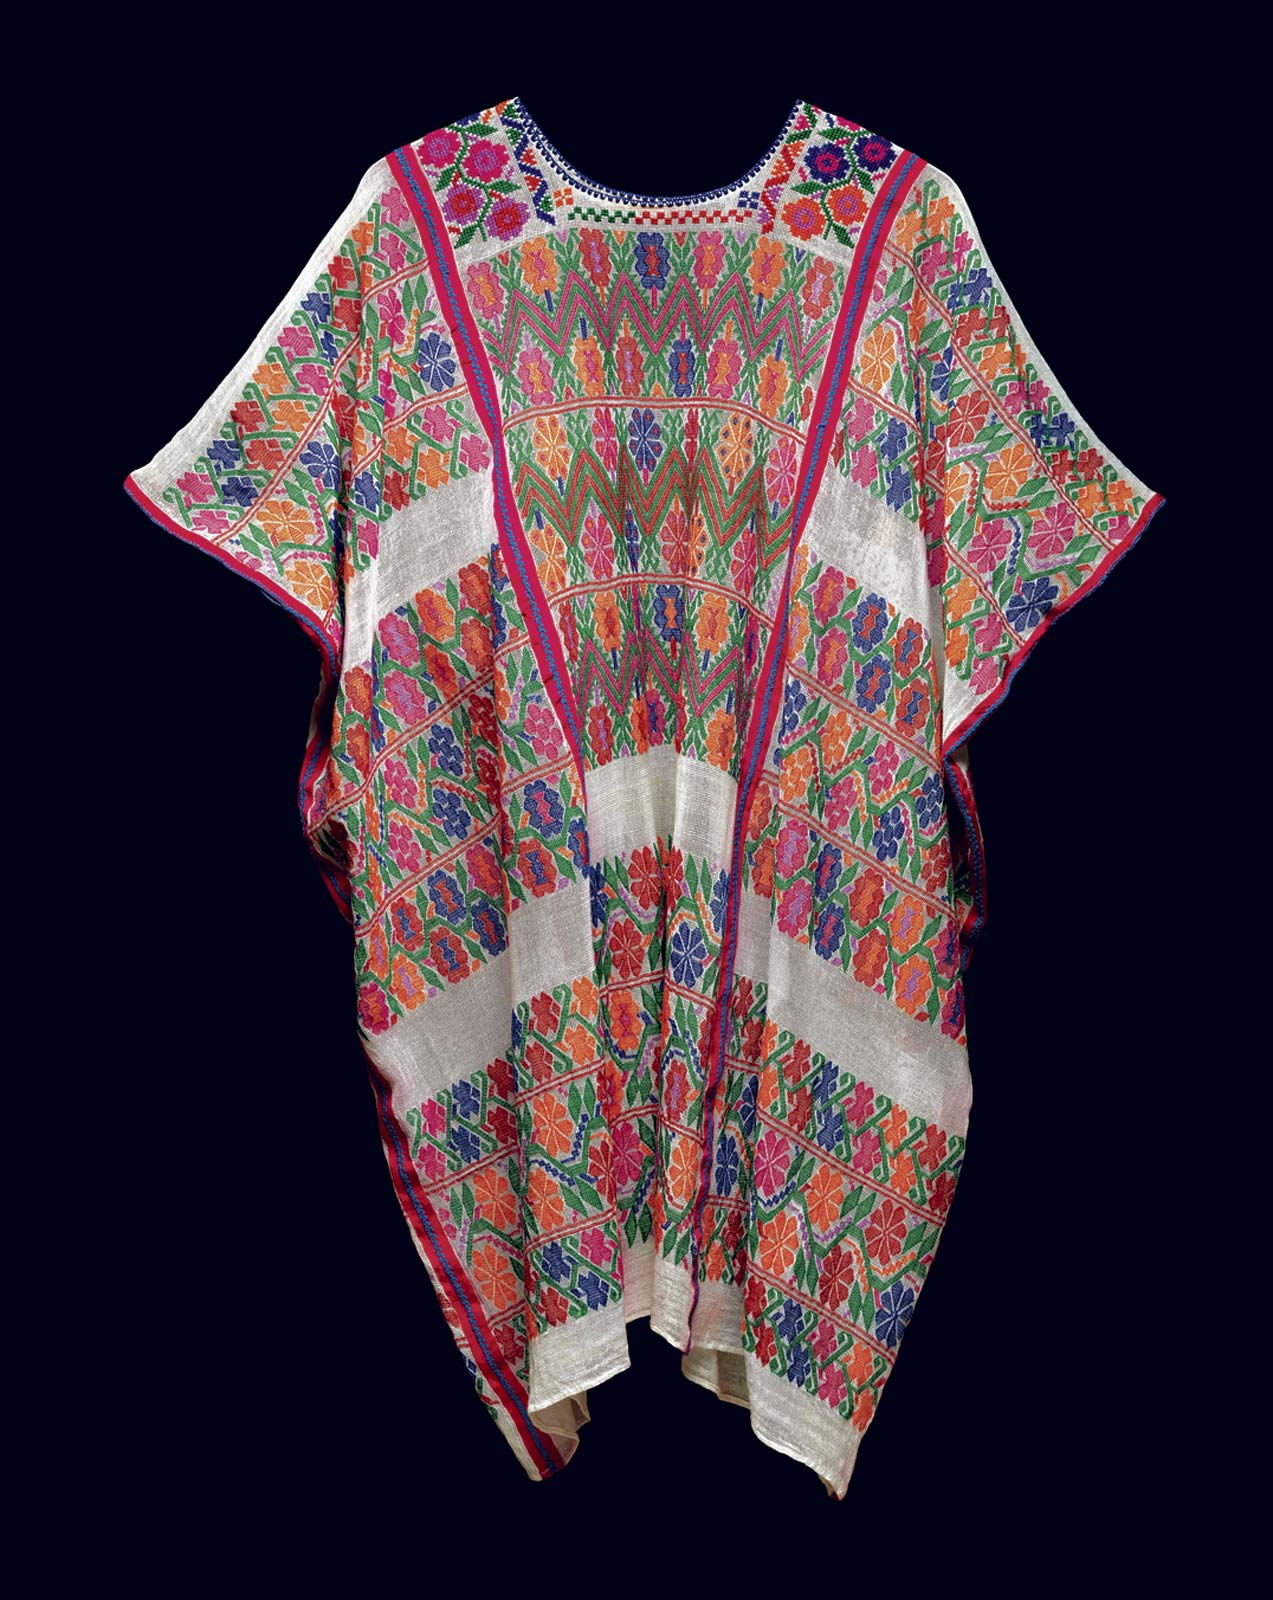 COTTON HUIPIL woven by Florentina Lopez de Jesus, Mexico. Photograph © by John Bigelow Taylor.